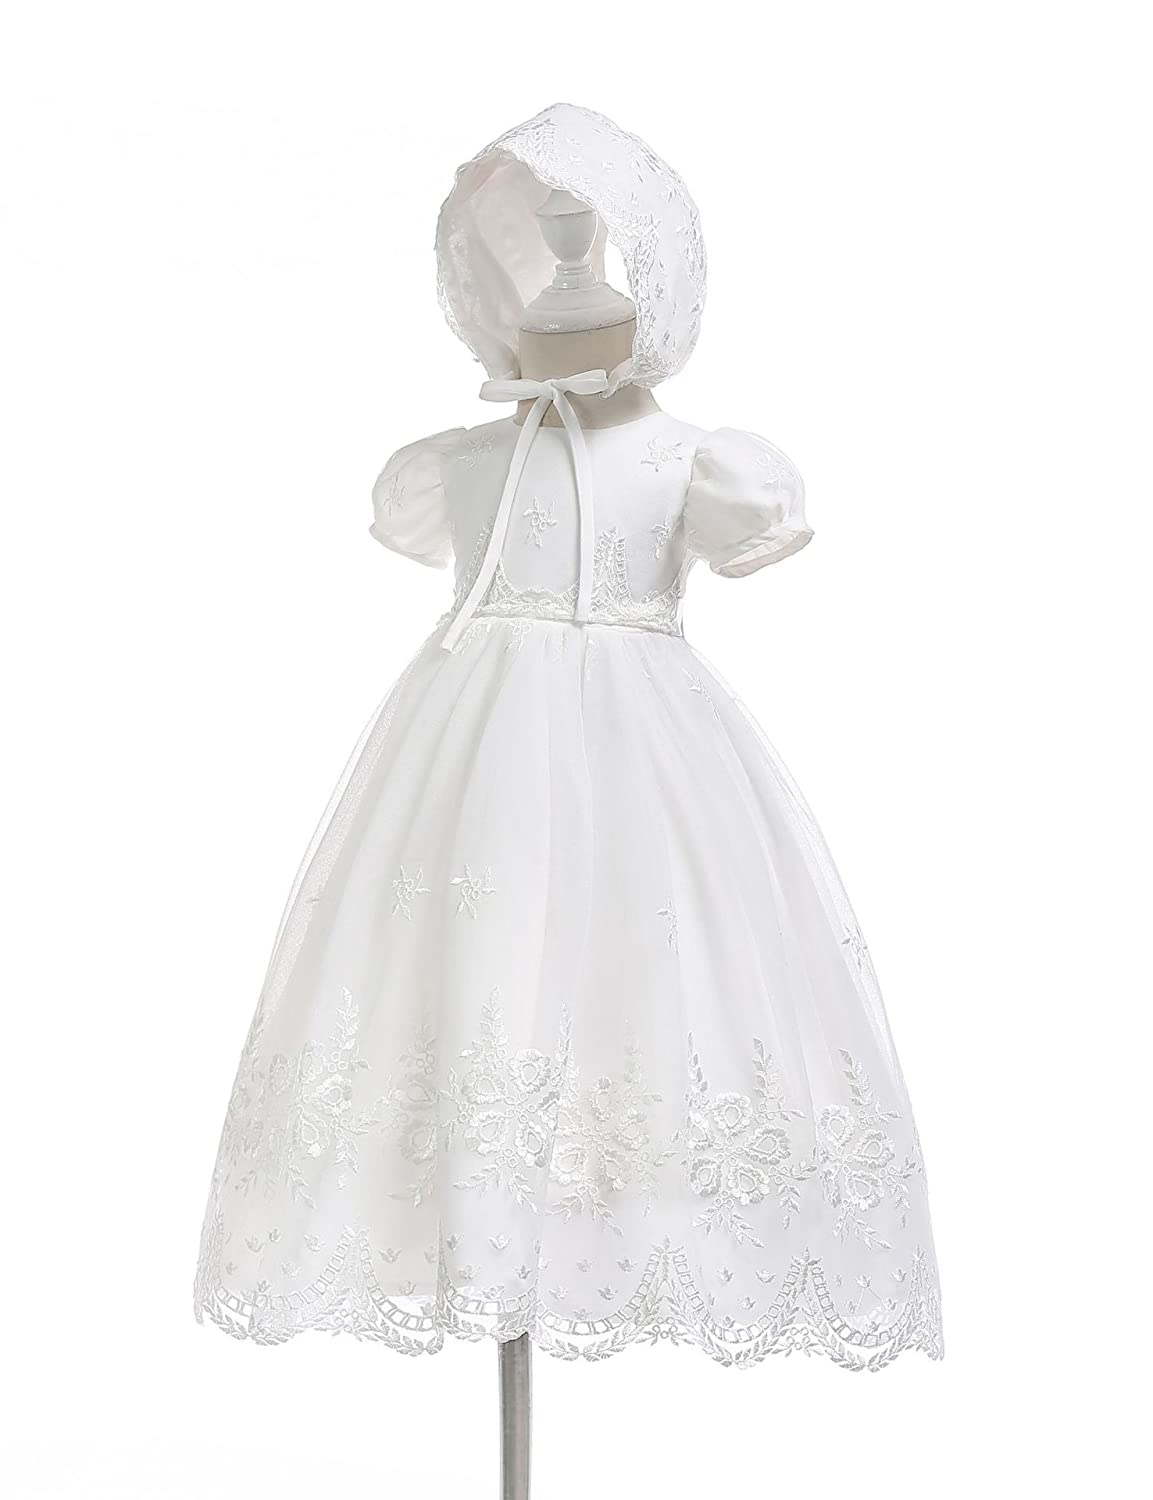 Aorme Infant Toddler Girl Christening Gown Lovely Lace Baptism Dress with Bonnet